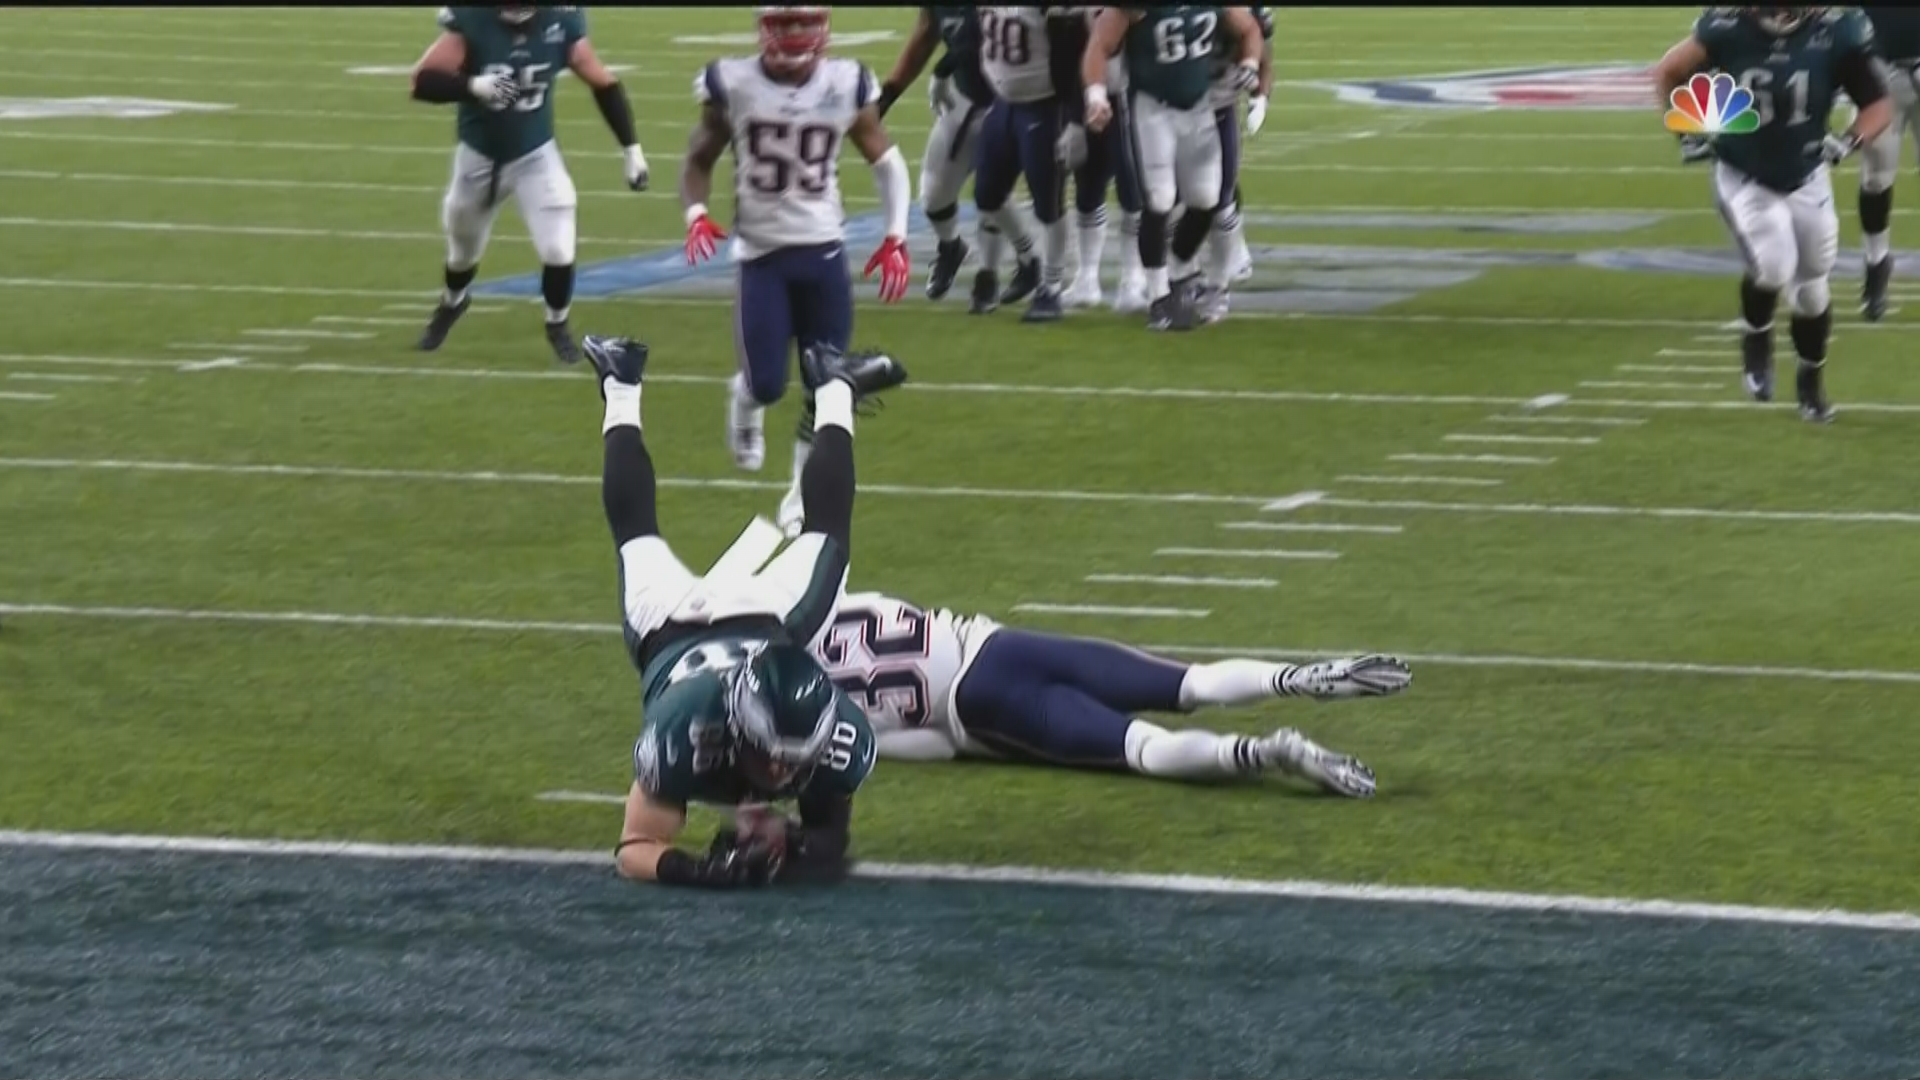 Why Zach Ertz' key TD catch against the Patriots' stood, but Jesse James' didn't